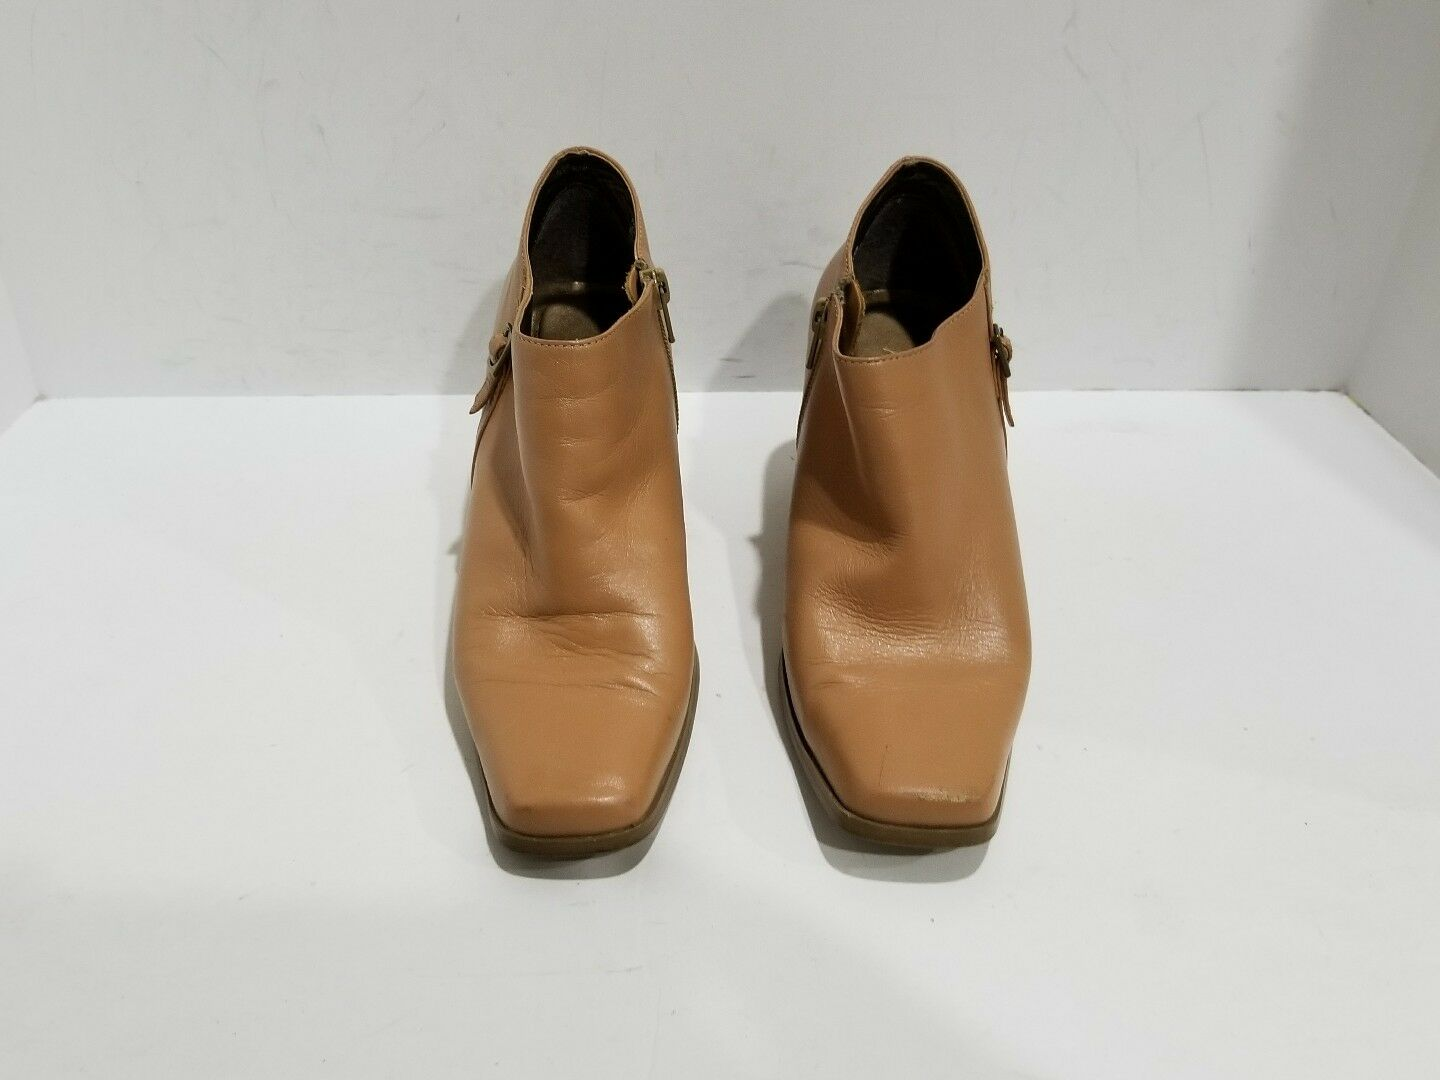 Markon Womens Tan Leather Ankle Boots Size 7 M